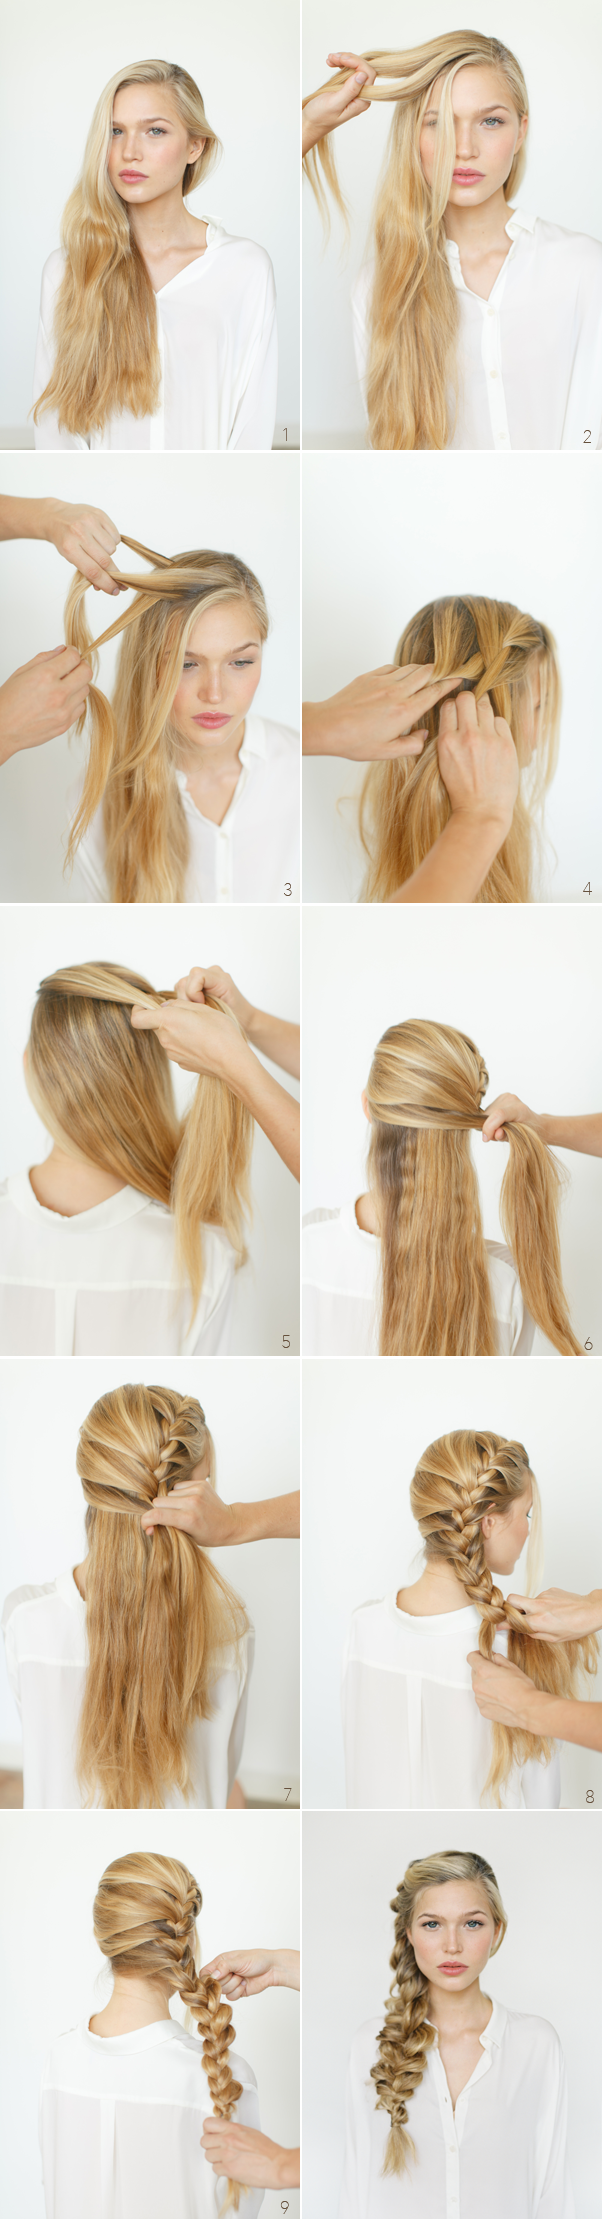 16 Stupendous Step By Step Hairstyle Tutorials Style For Hair